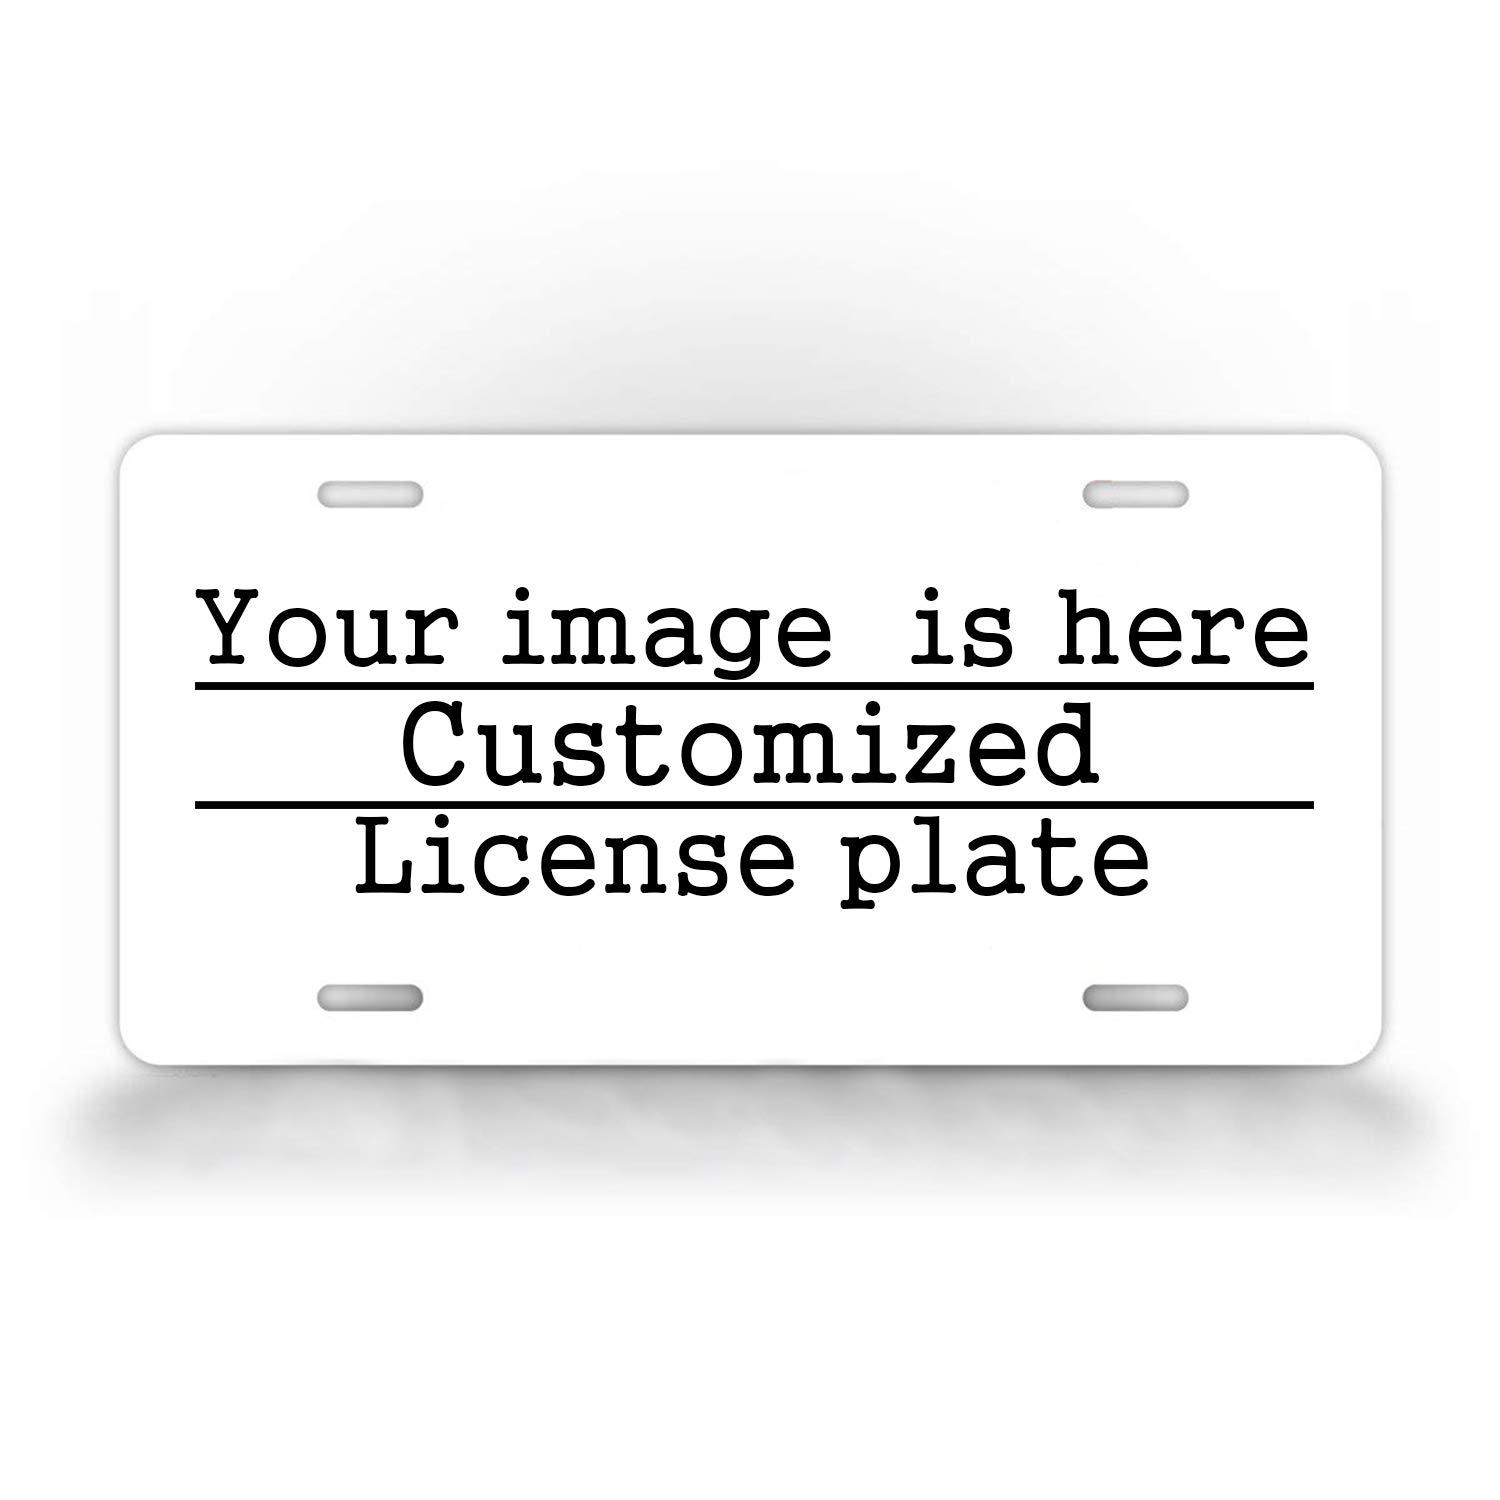 DQVWGK Personalized License Plate with Your Image Add Pictures, Text, Logo - Custom License Plates Auto Car Tag - Metal for Front of Car Aluminum License Plate Covers 6'' x 12'' inch